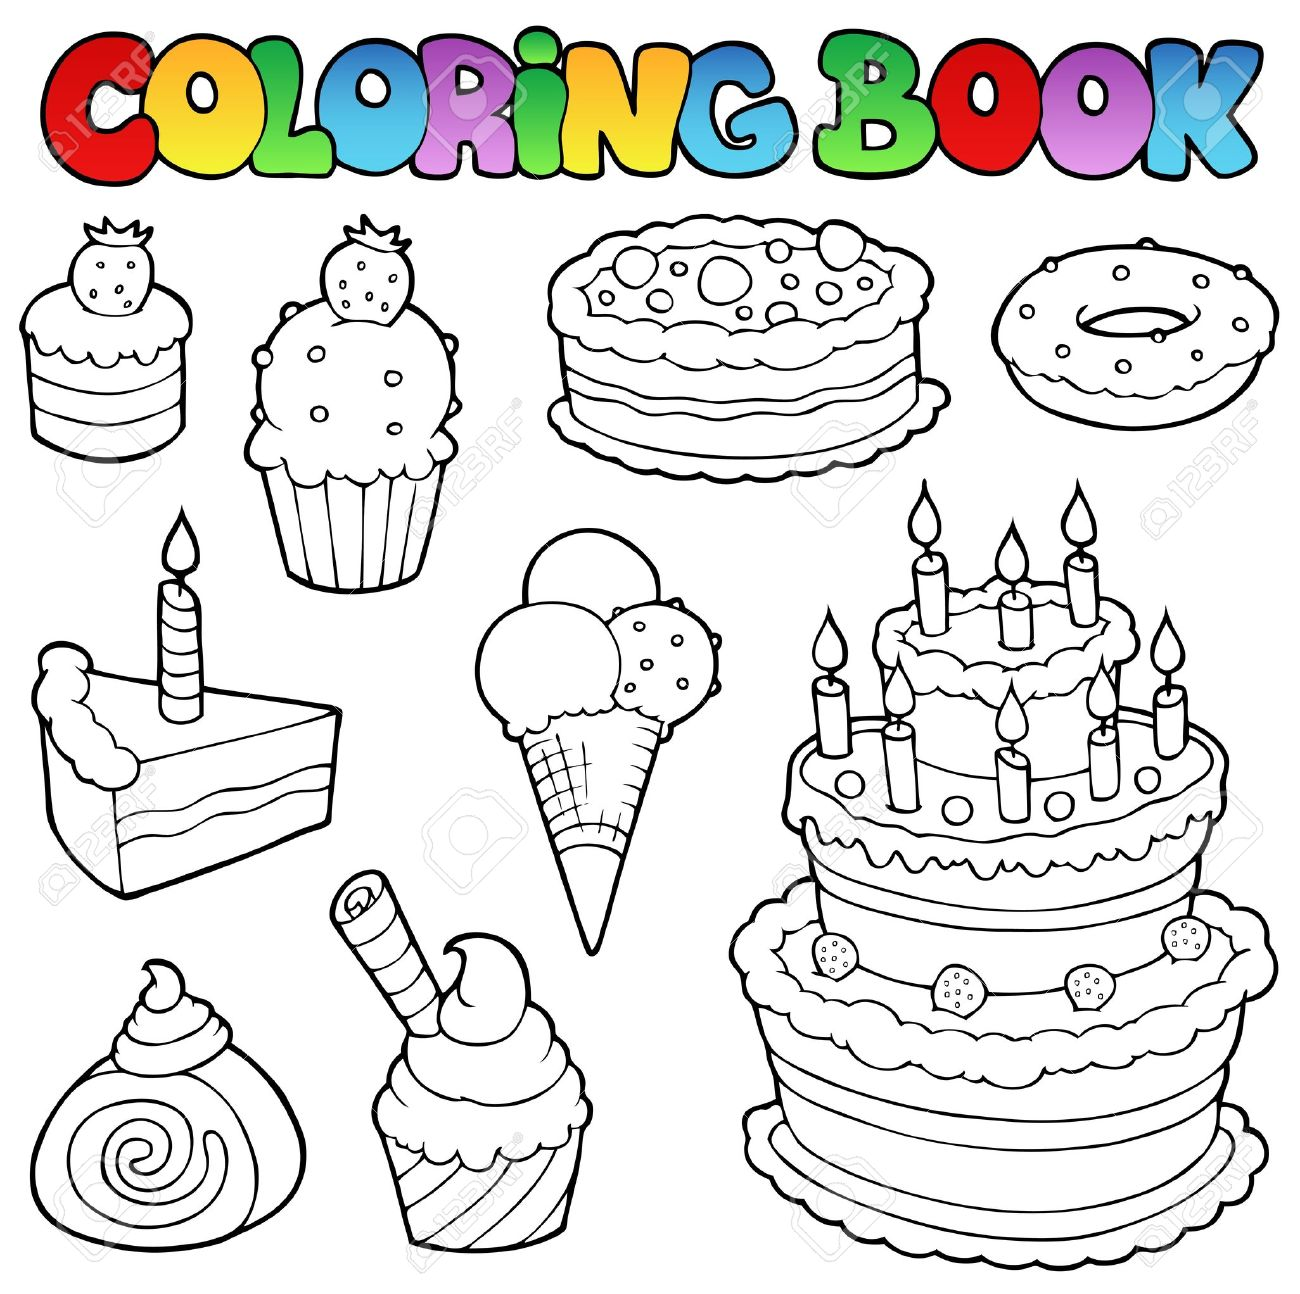 Coloring Book Various Cakes 1 - Vector Illustration. Royalty Free ...